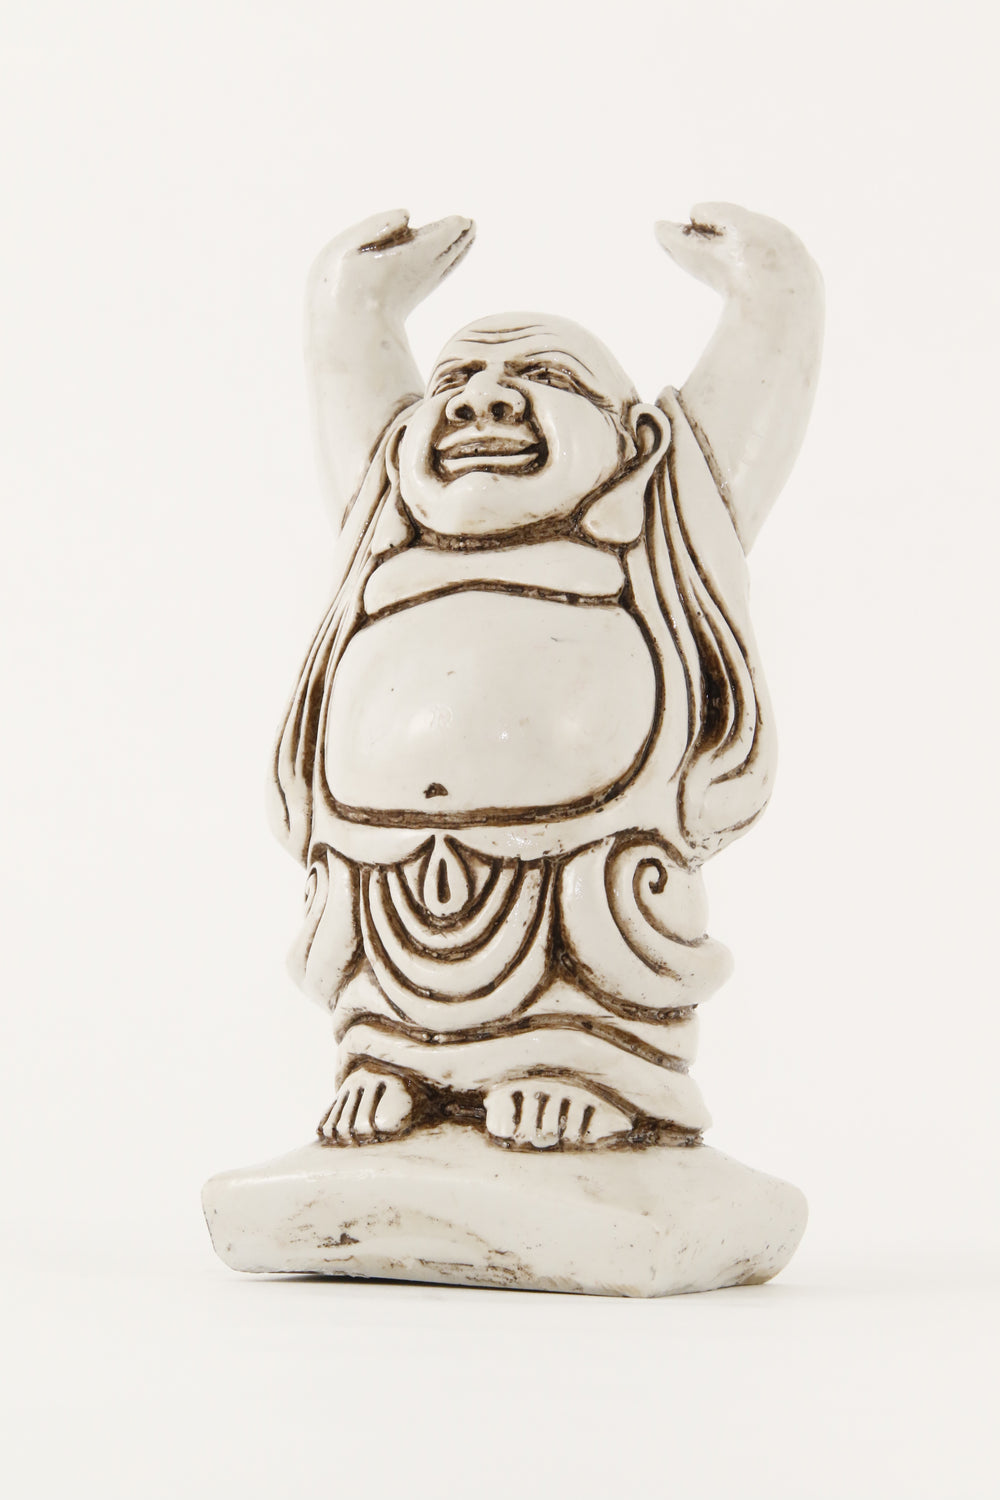 LAUGHING BUDDHA STATUE OFF-WHITE LARGE SIZE SIDE VIEW